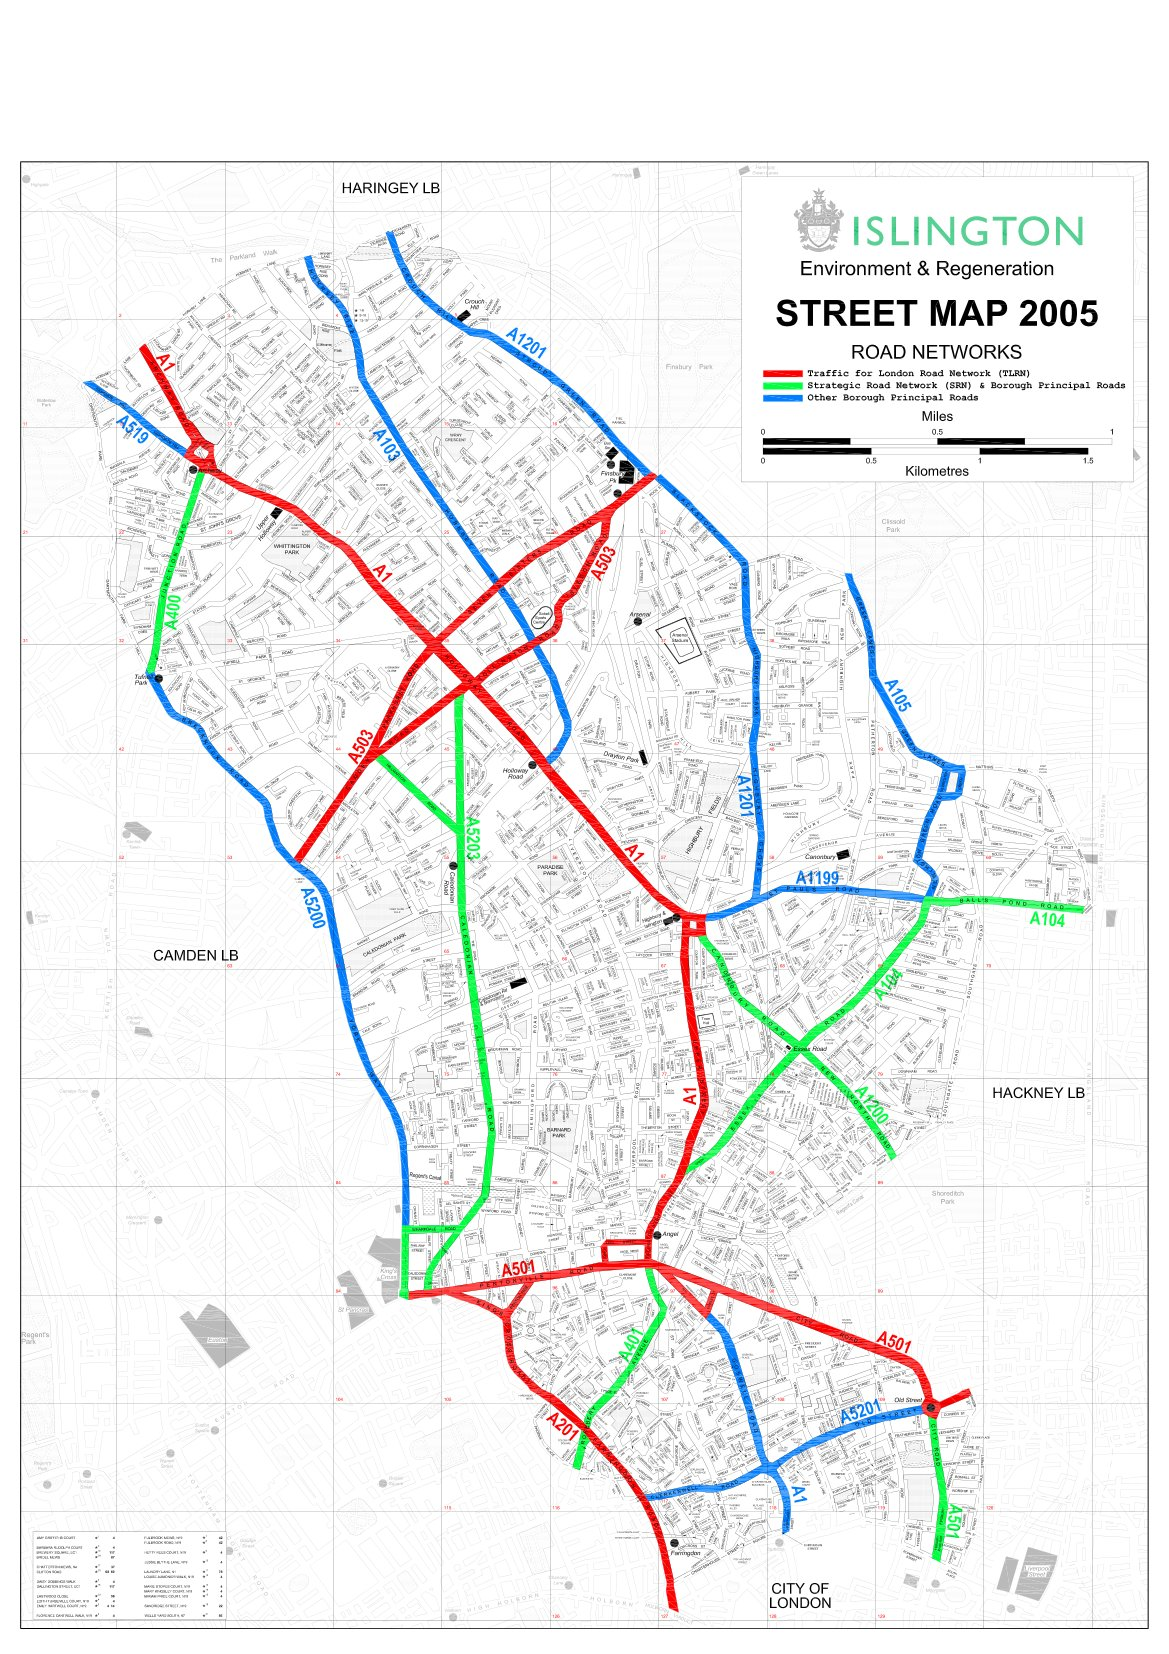 Islington's road network